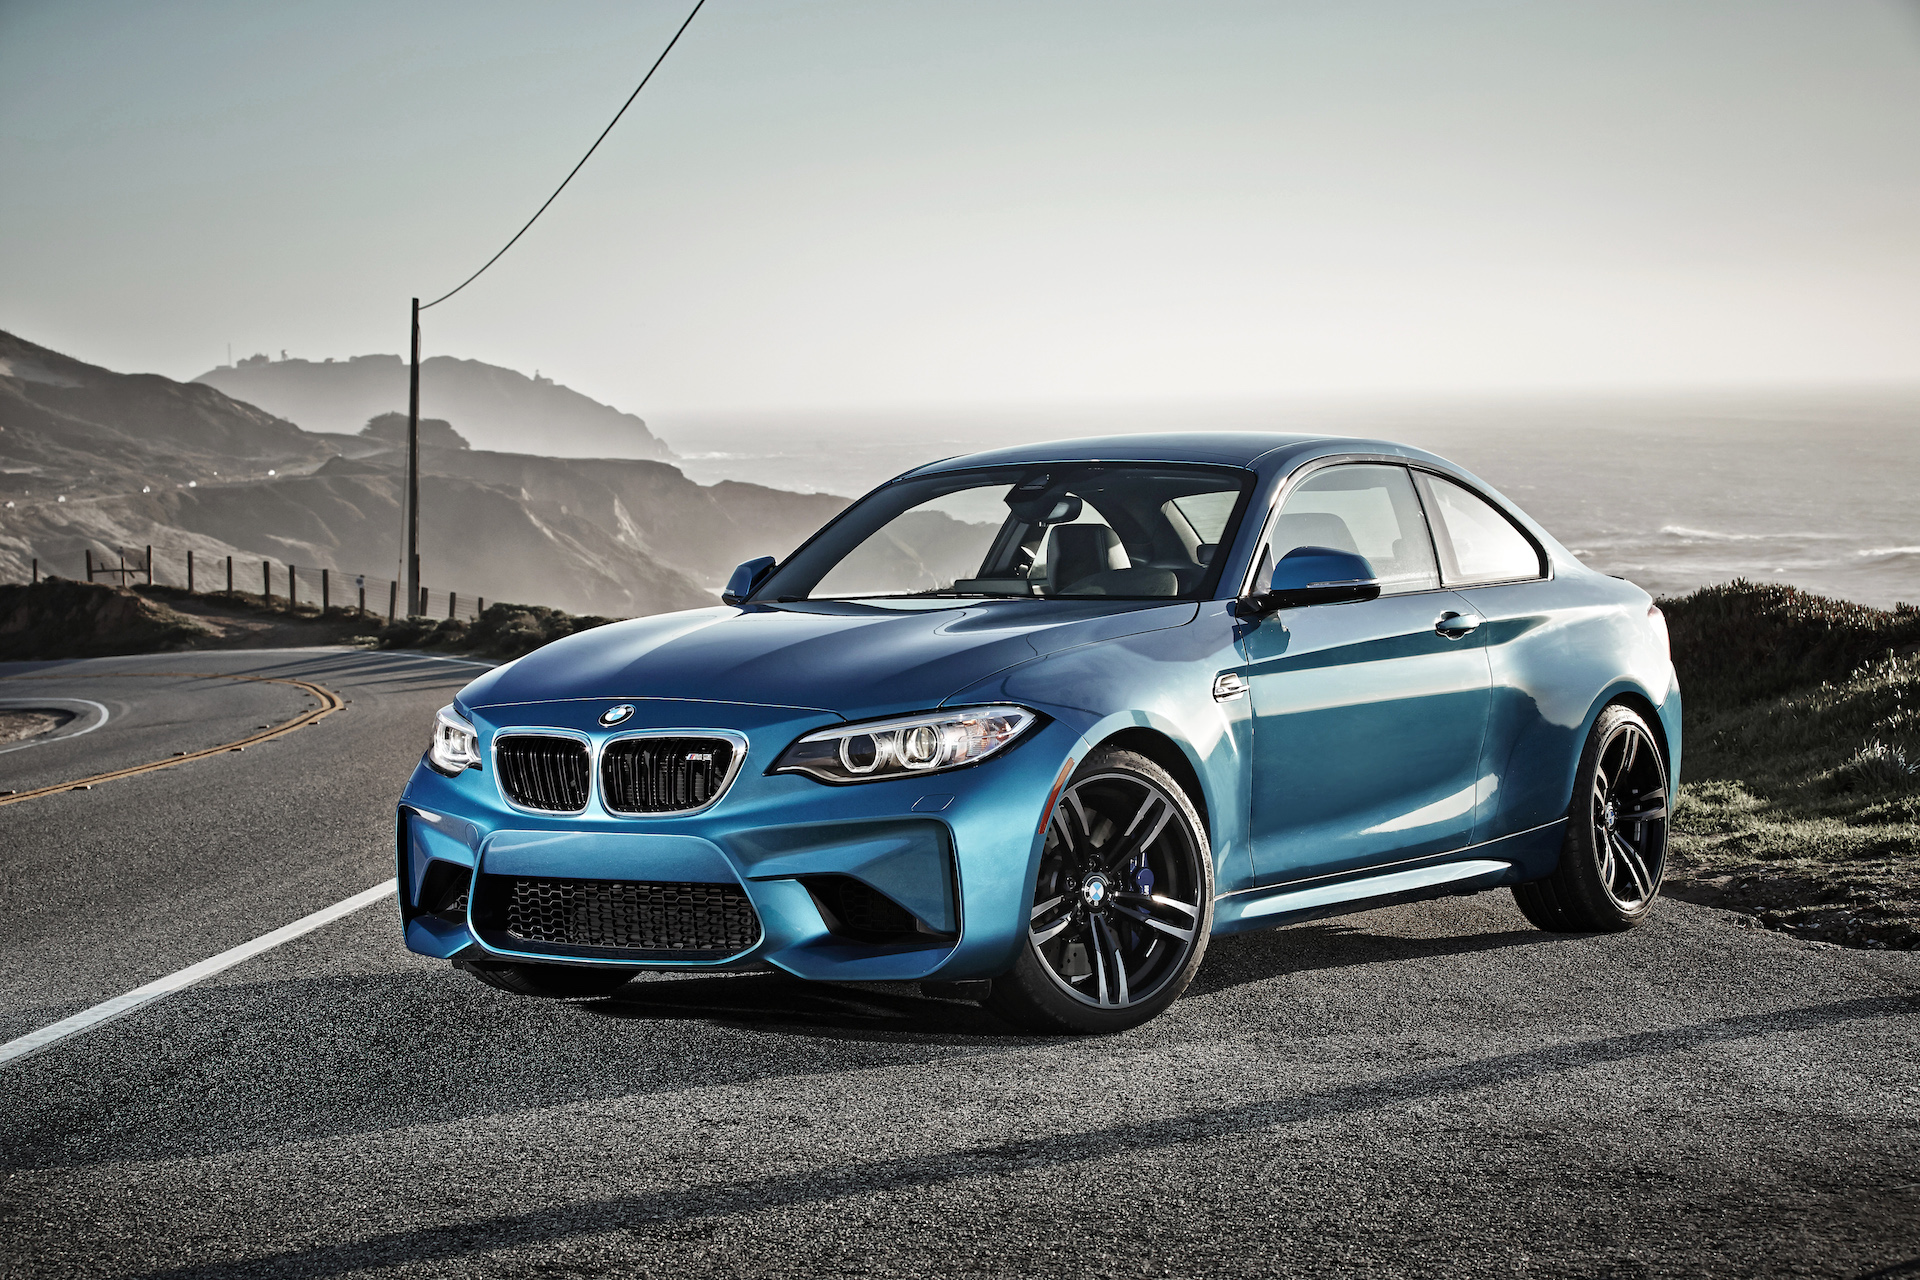 Cars For Sale Denver >> 2018 BMW M2 Review, Ratings, Specs, Prices, and Photos - The Car Connection